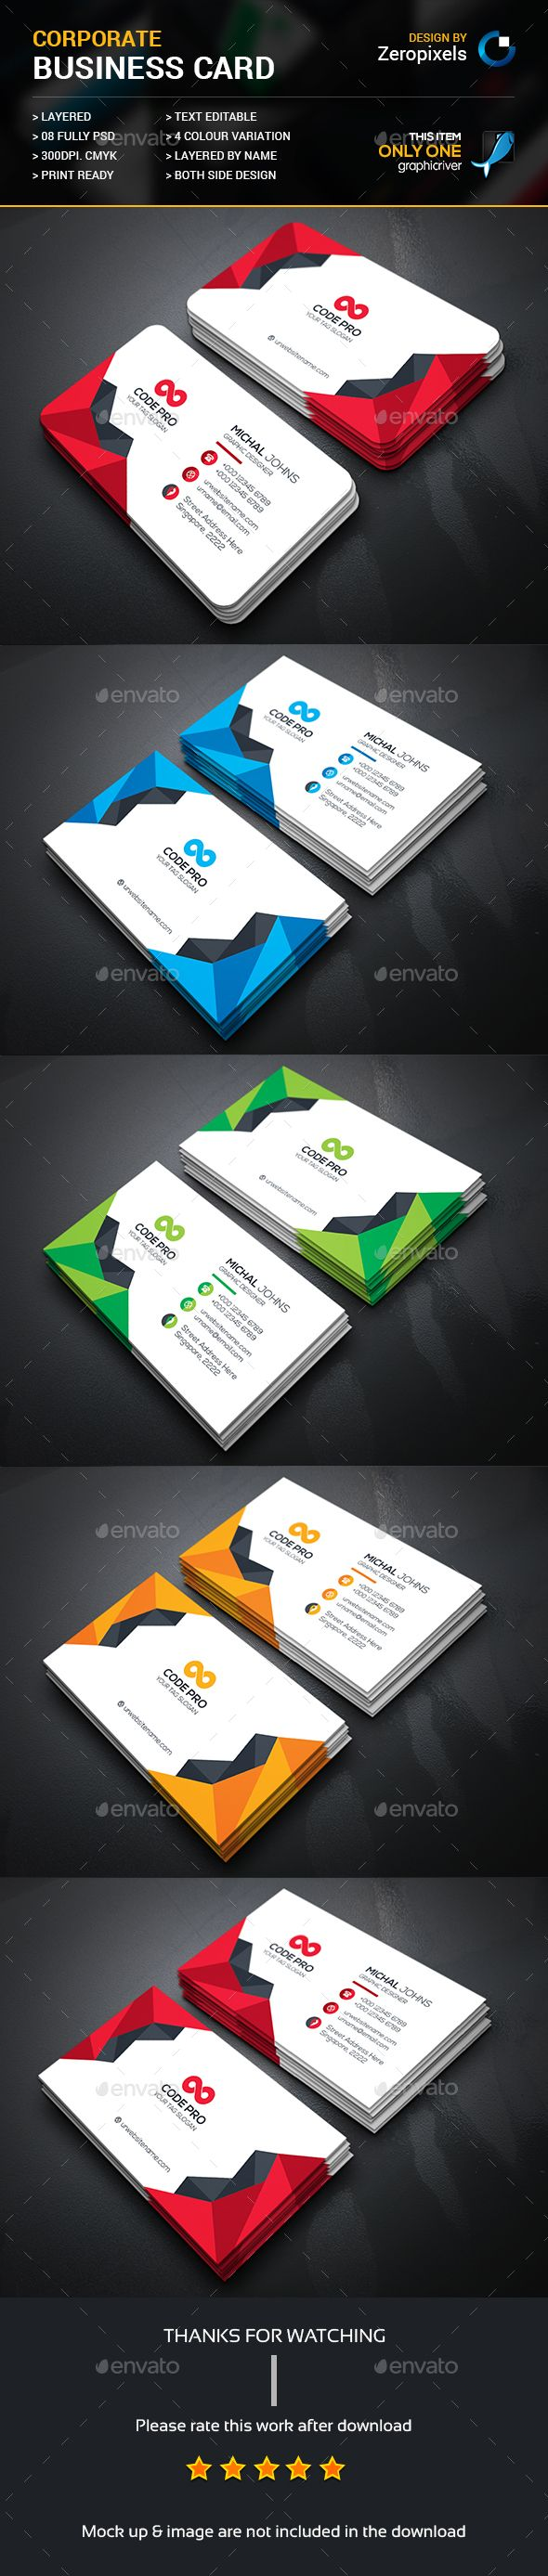 First class business card tarjetas pinterest business cards buy abstract business card by zeropixels on graphicriver features easy customizable and editable business card in with bleed cmyk color design in 300 dpi reheart Choice Image